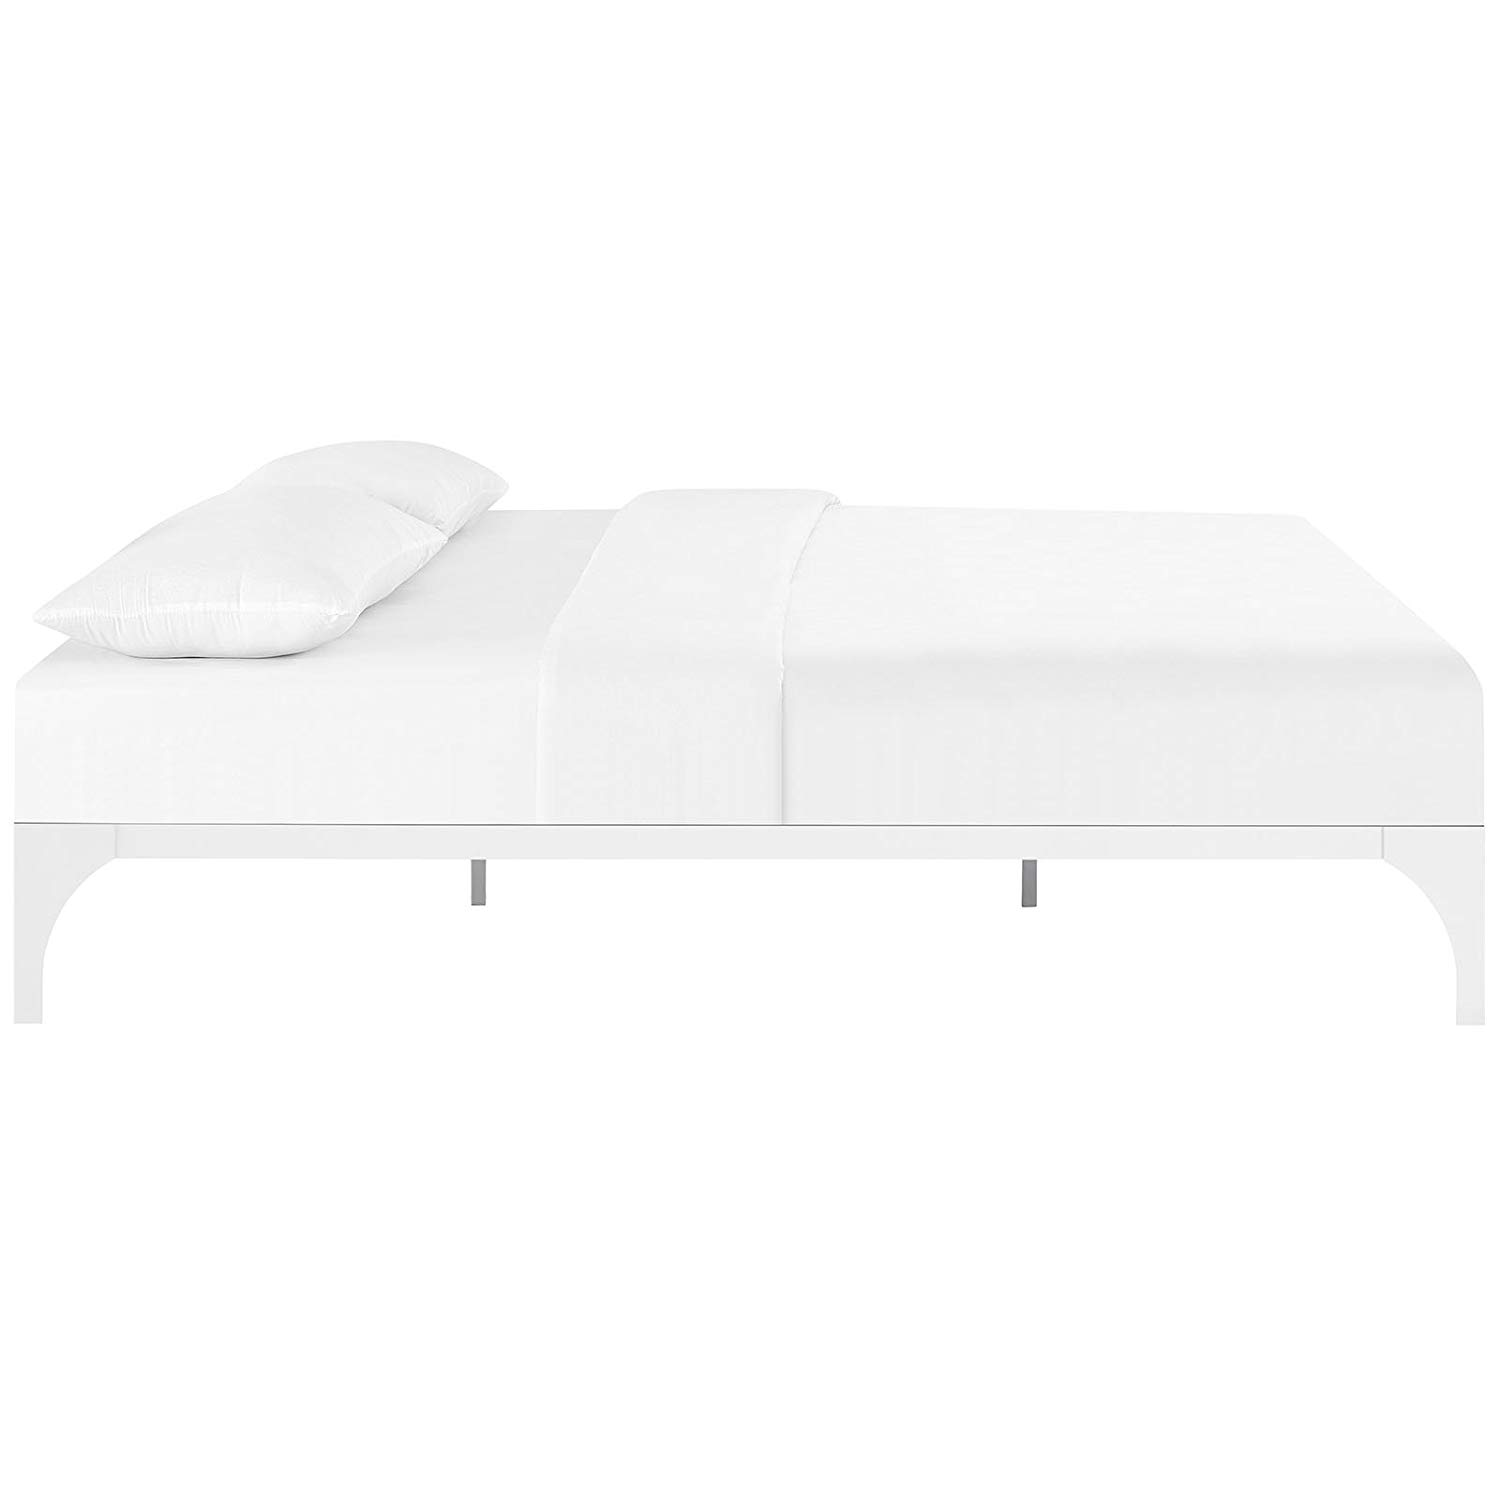 Modway Ollie Queen Bed Frame in White - $141.75